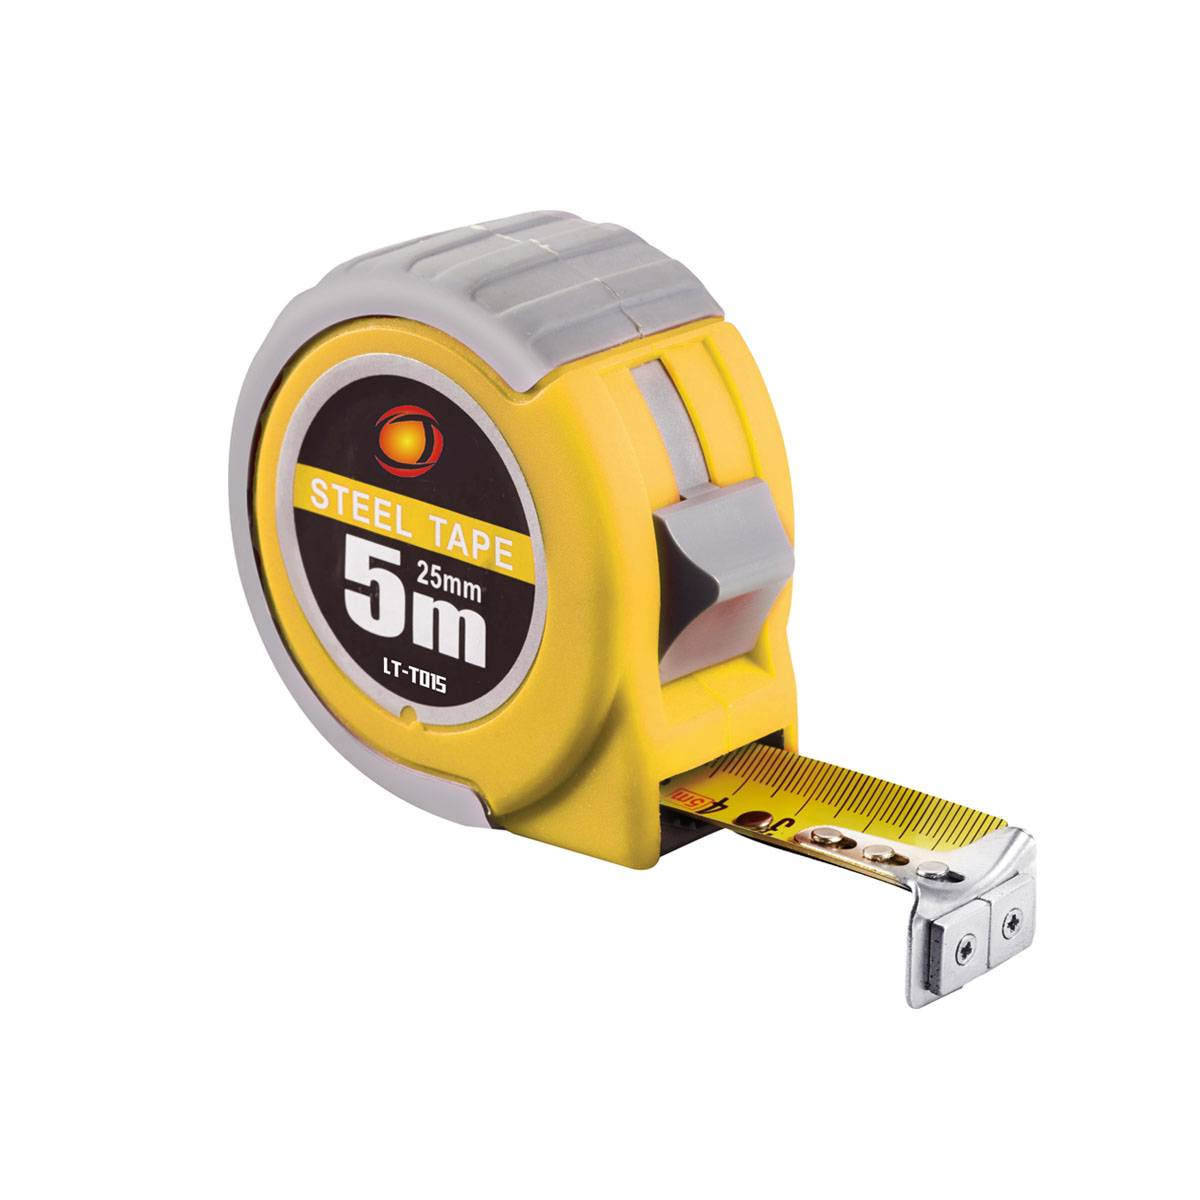 OEM/ODM Supplier Mini Pocket Spirit Level -